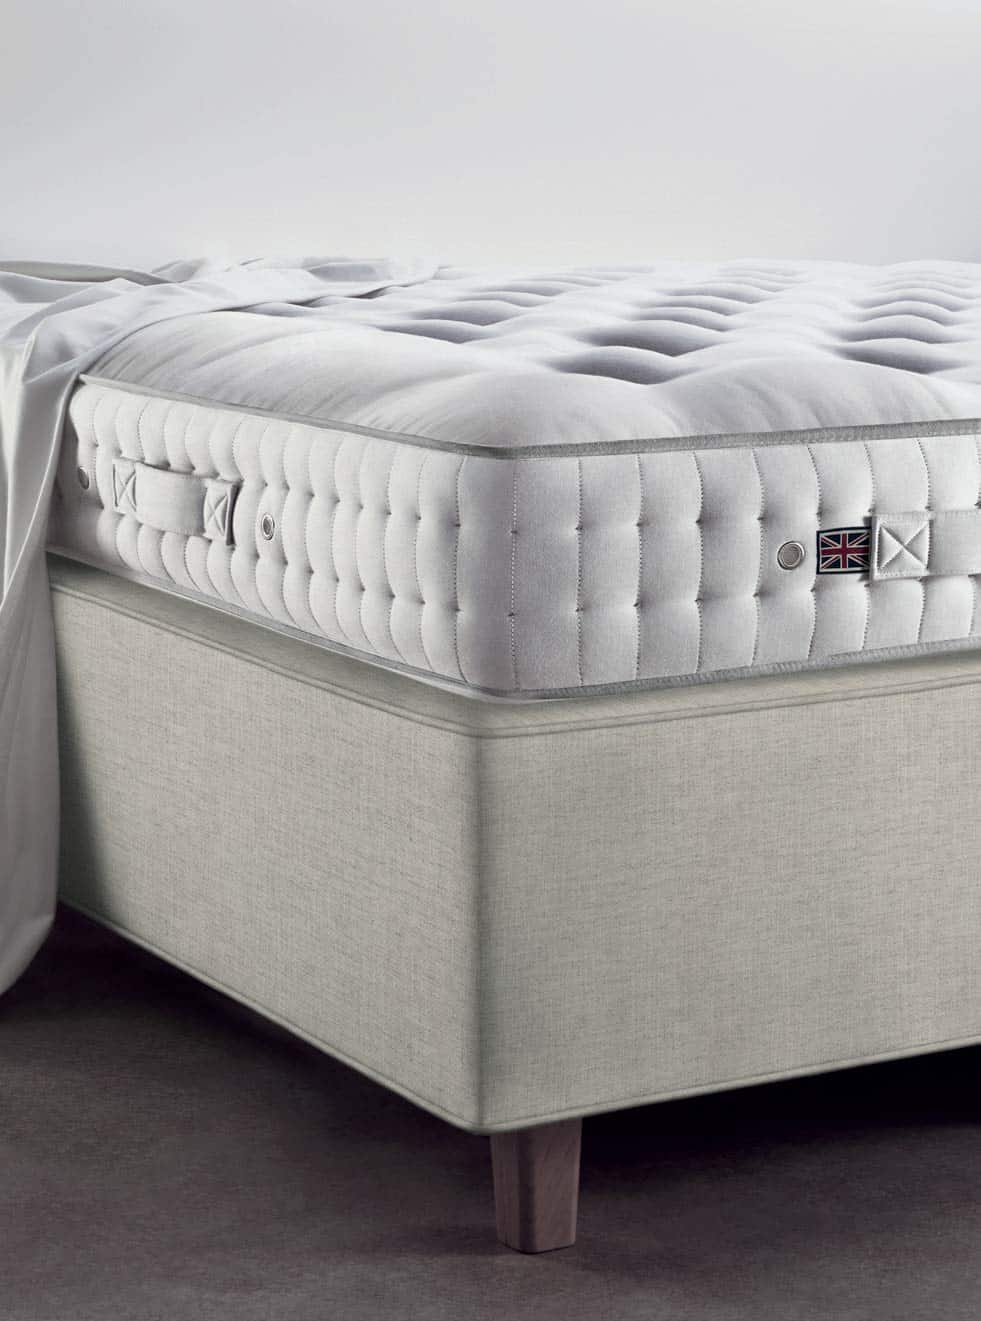 Vispring Oxford mattress and Prestige divan corner